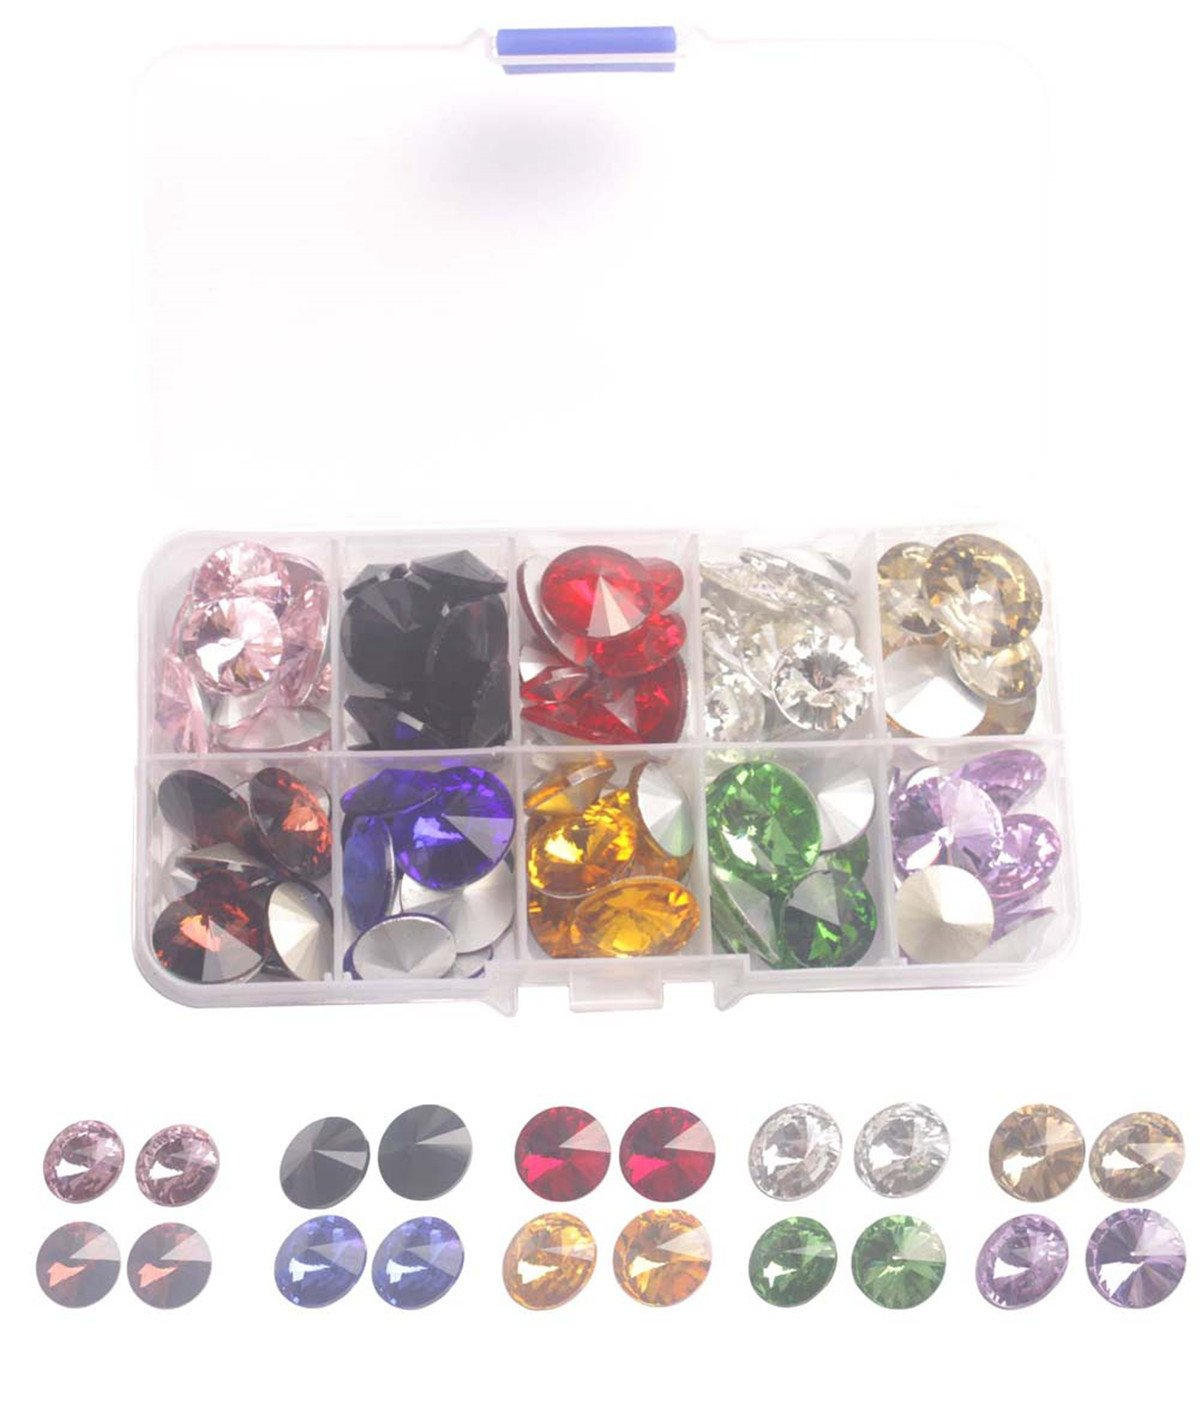 100PCS Mixed Colors Pointed Teardrops Fancy Glass Stones Various Sizes